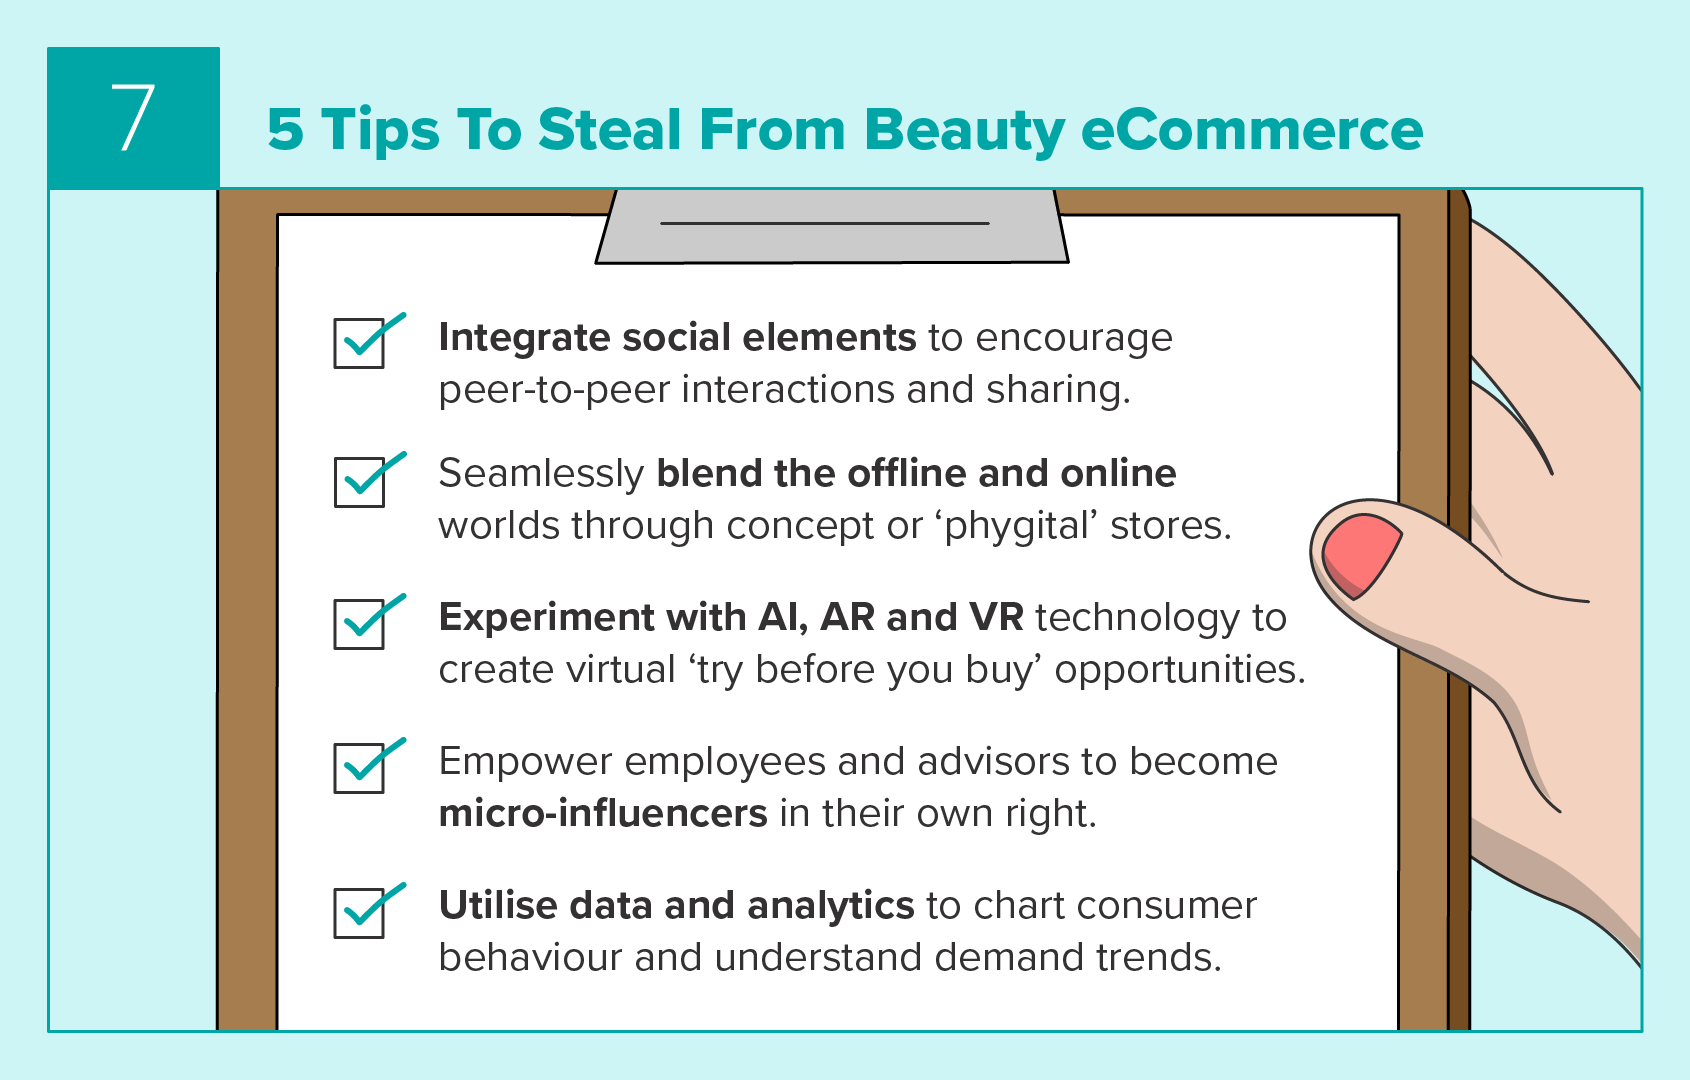 5 Tips to Steal from Beauty eCommerce